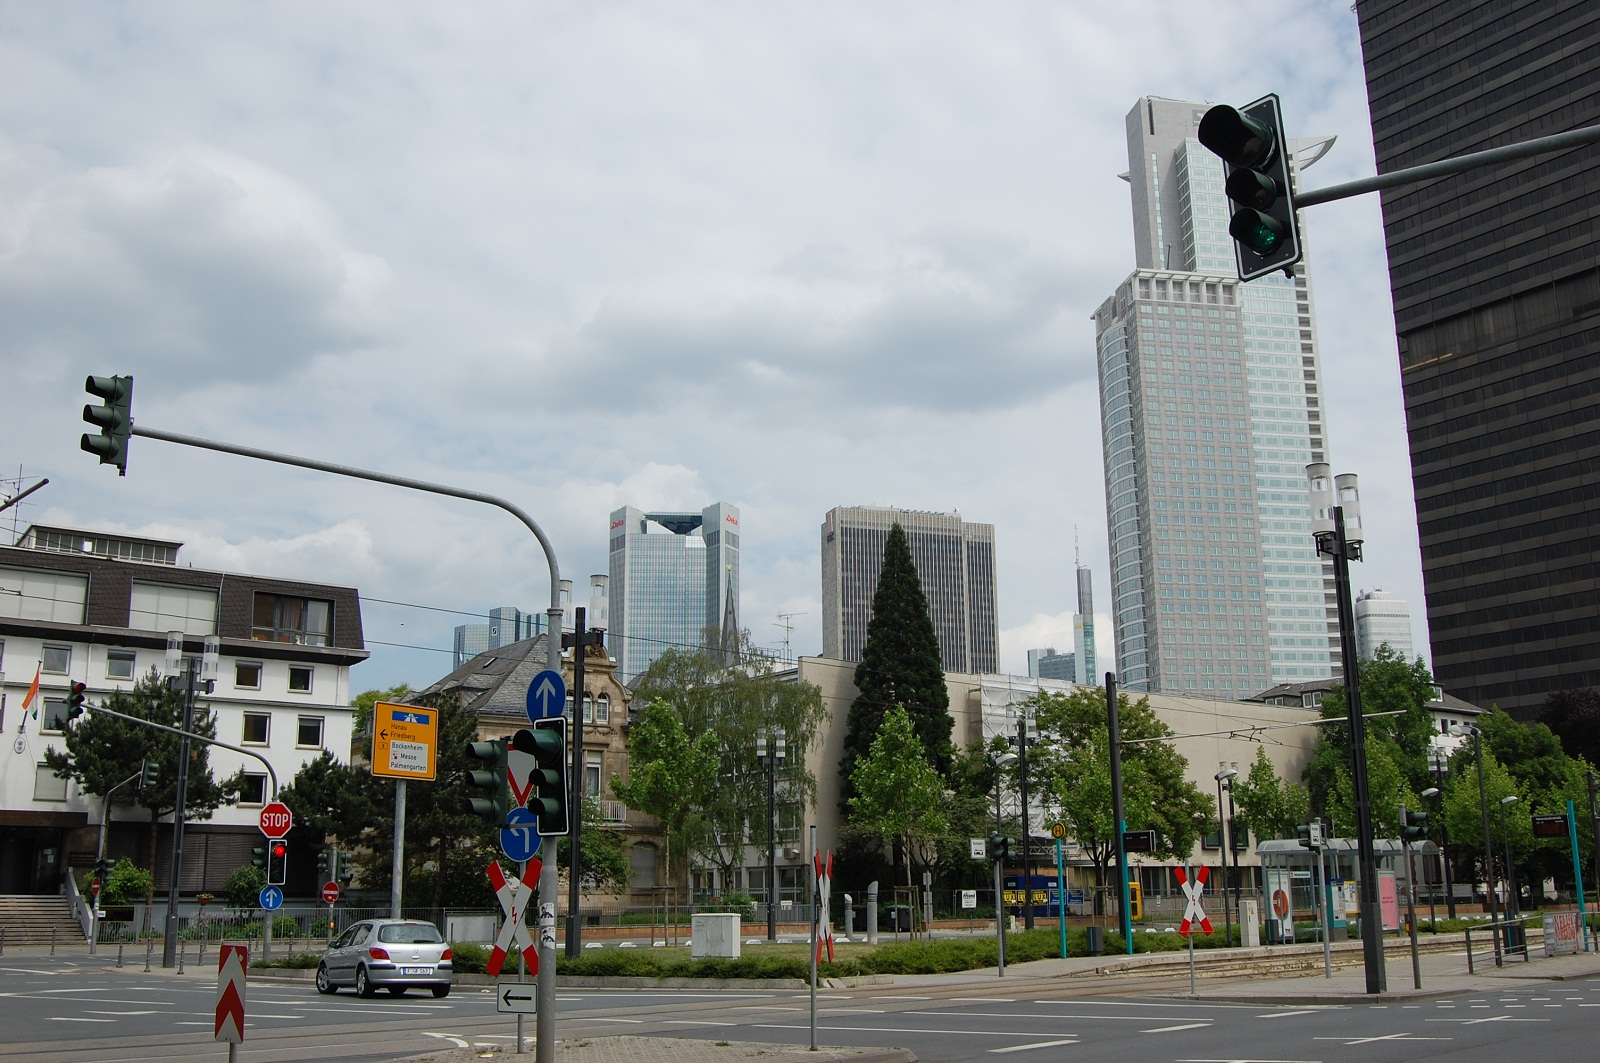 Frankfurt Architecture, Germany, Skyscrapers (2)